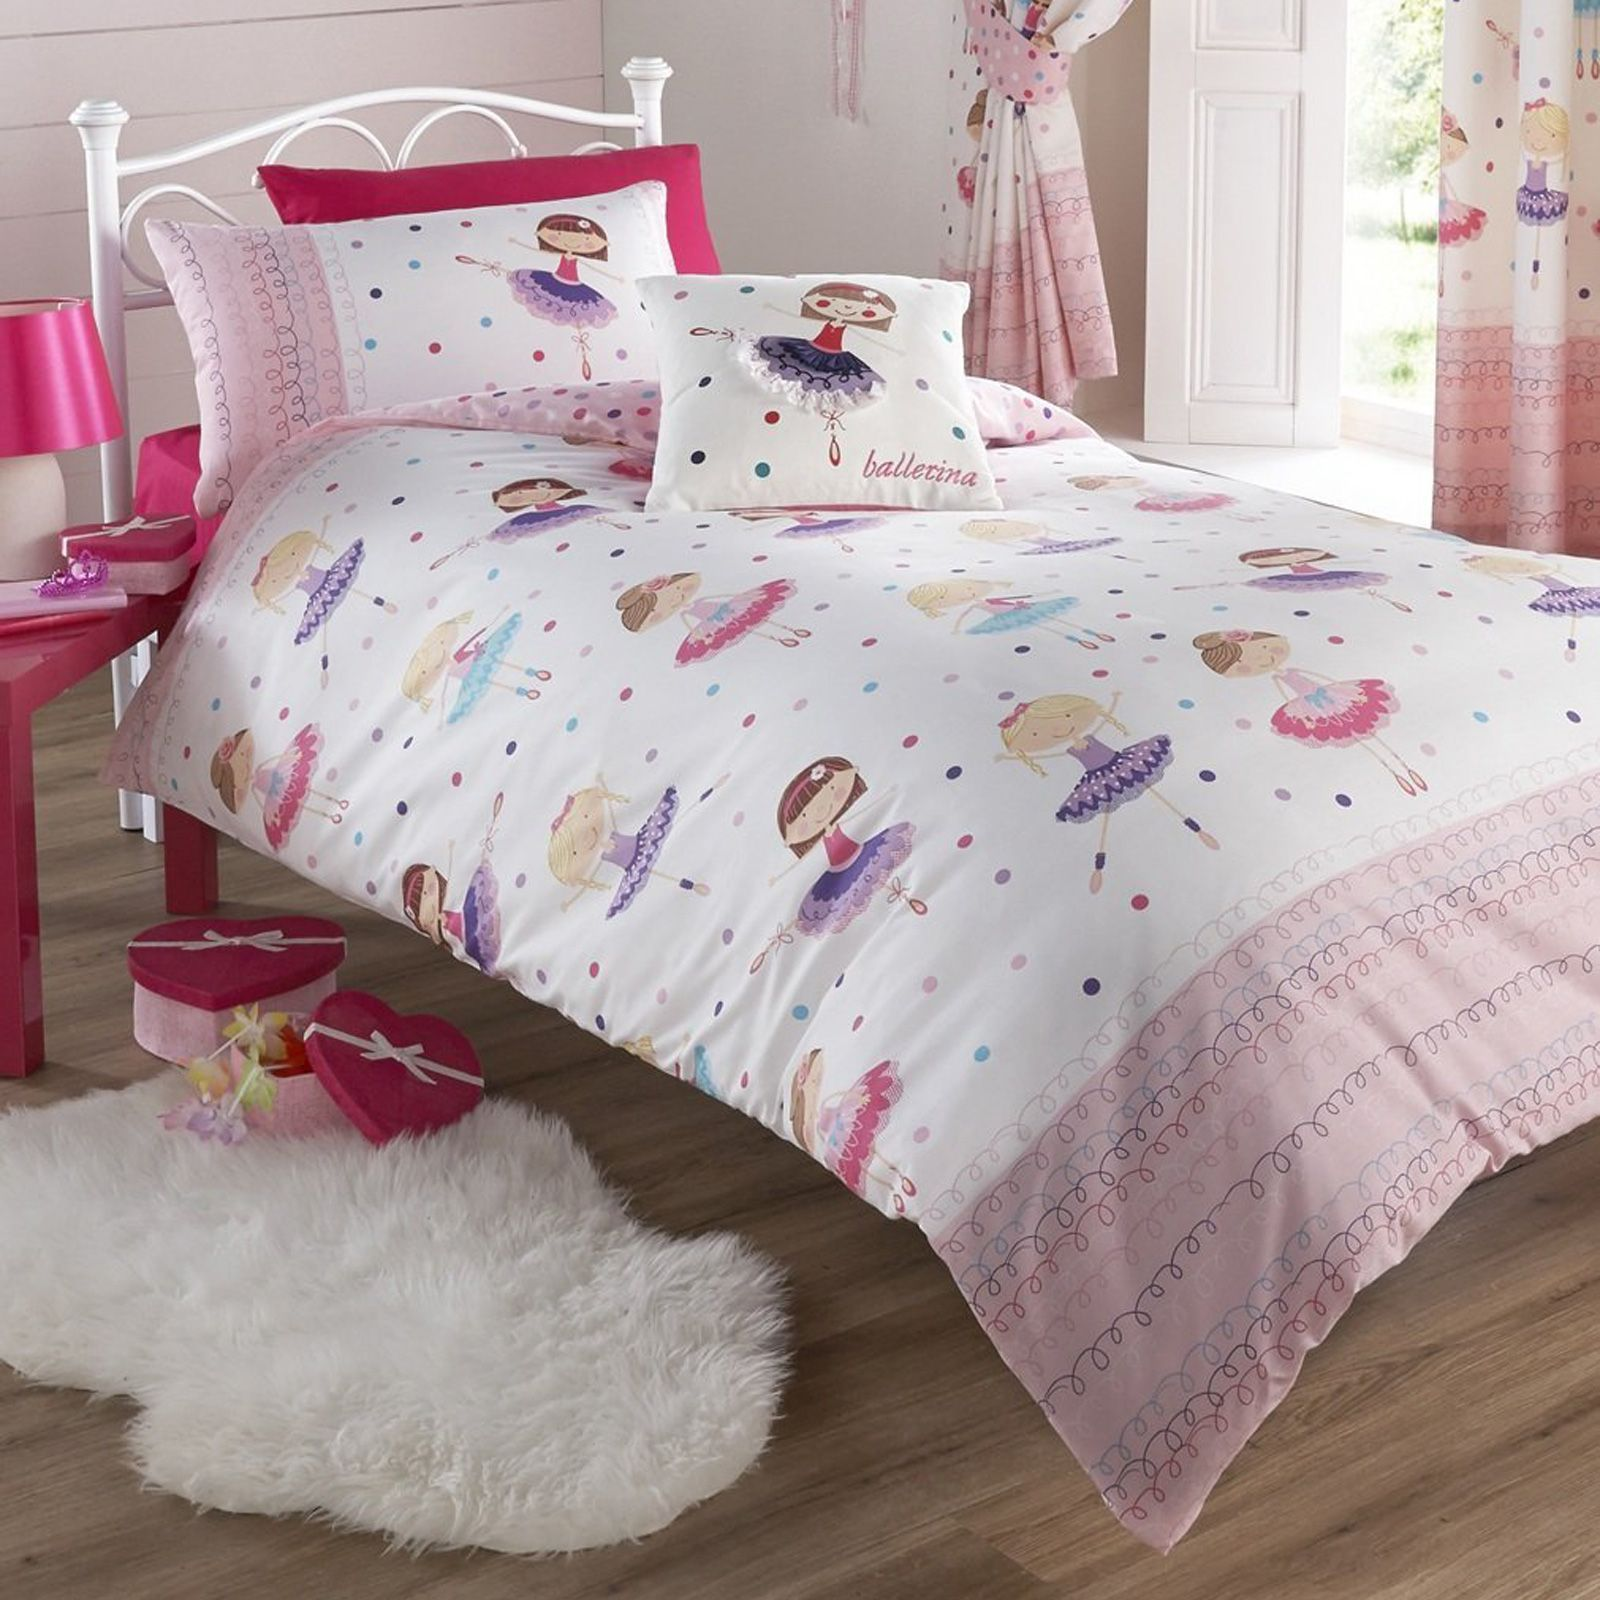 Horse Bedding for Girls Room | Full Size Superhero Bedding | Horse Bedding for Girls